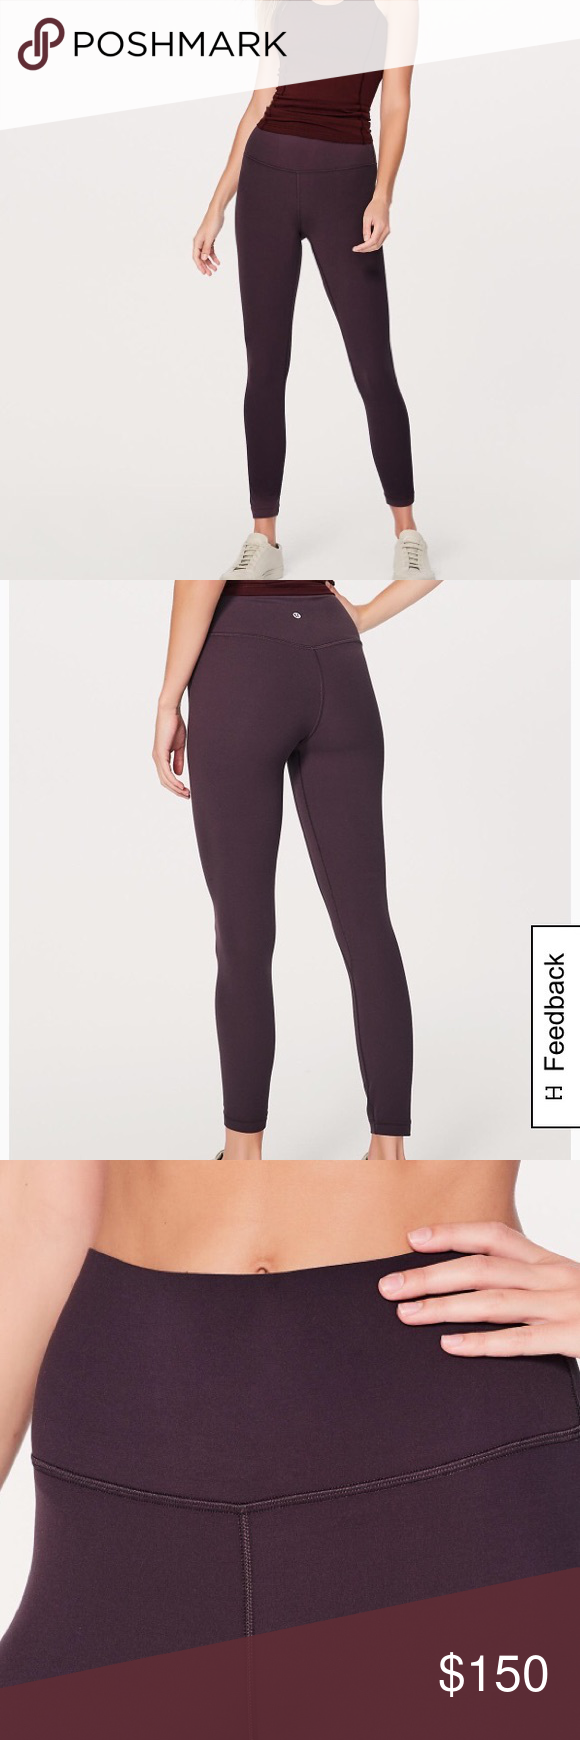 NWT Lululemon Align in Black Currant NWT Lululemon align pant in black currant. Sold out on Lululemon in this size. Such soft material! lululemon athletica Pants Leggings